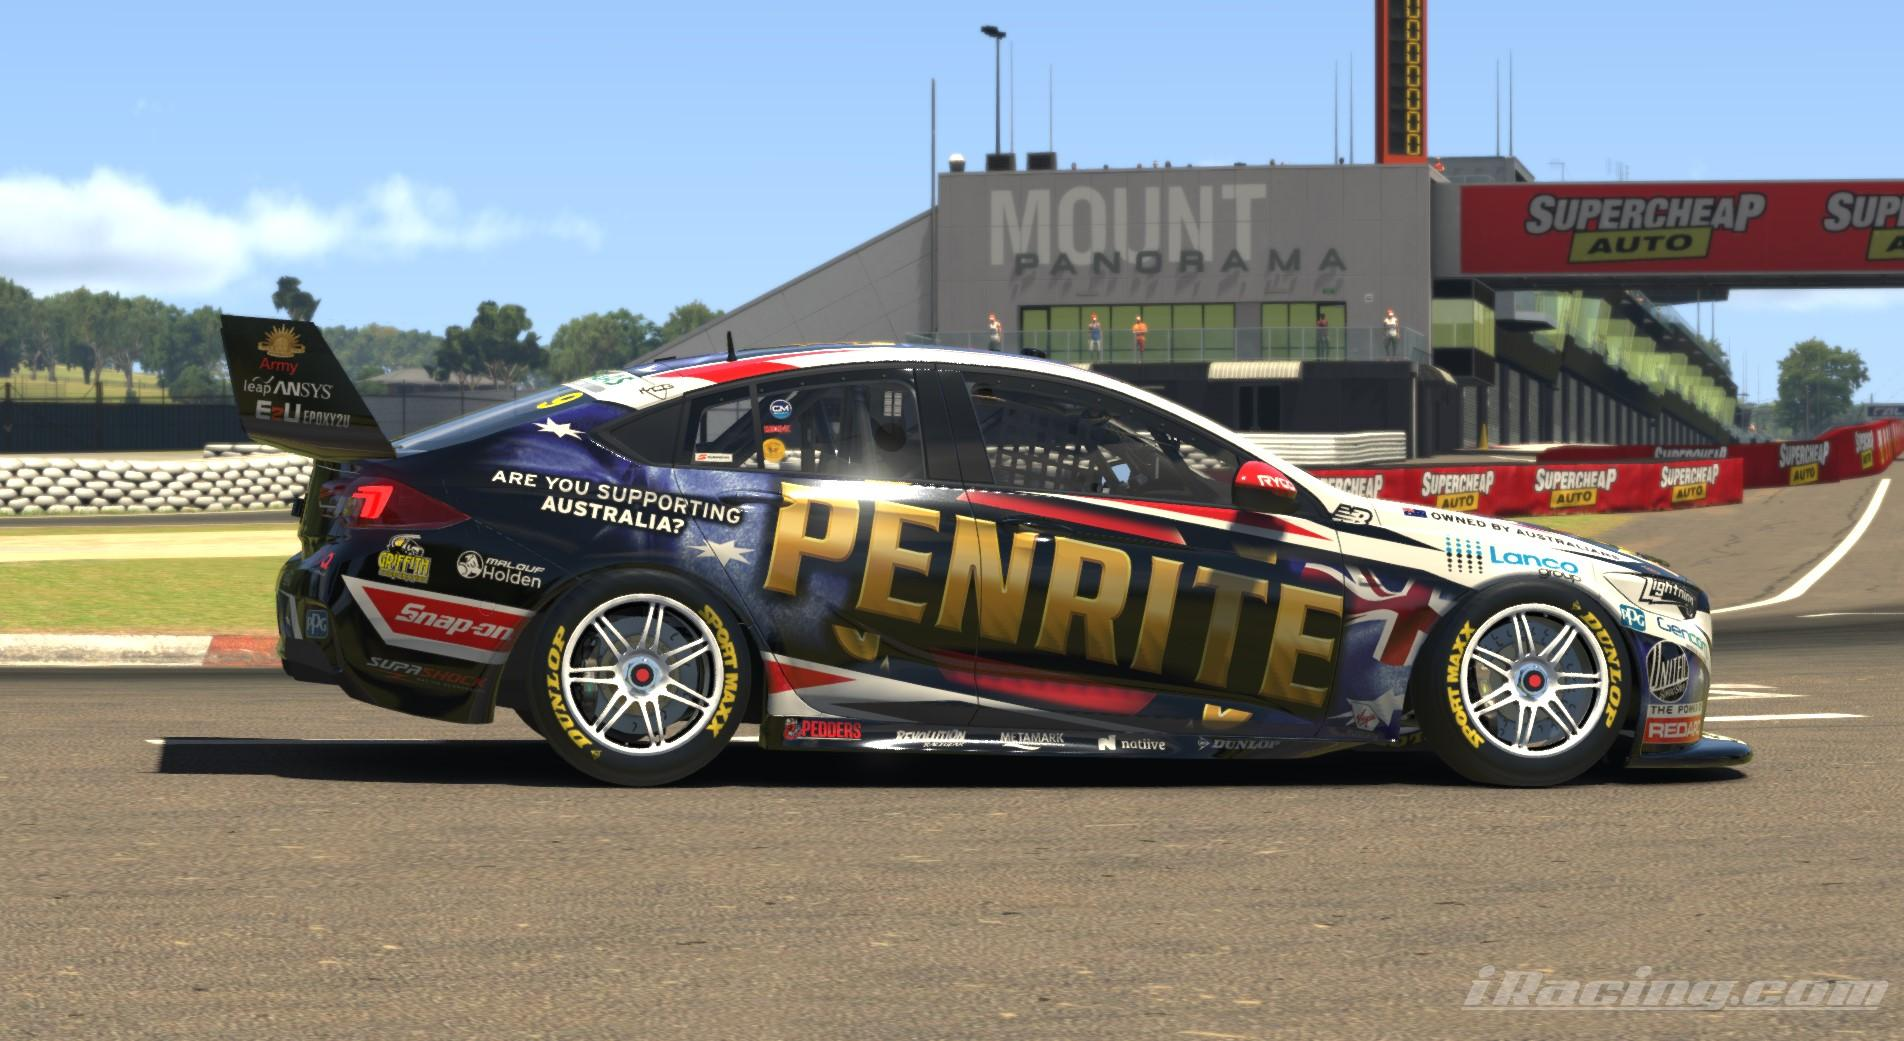 Preview of 2020 Penrite Racing - Bathurst Edition by Paul Mansell